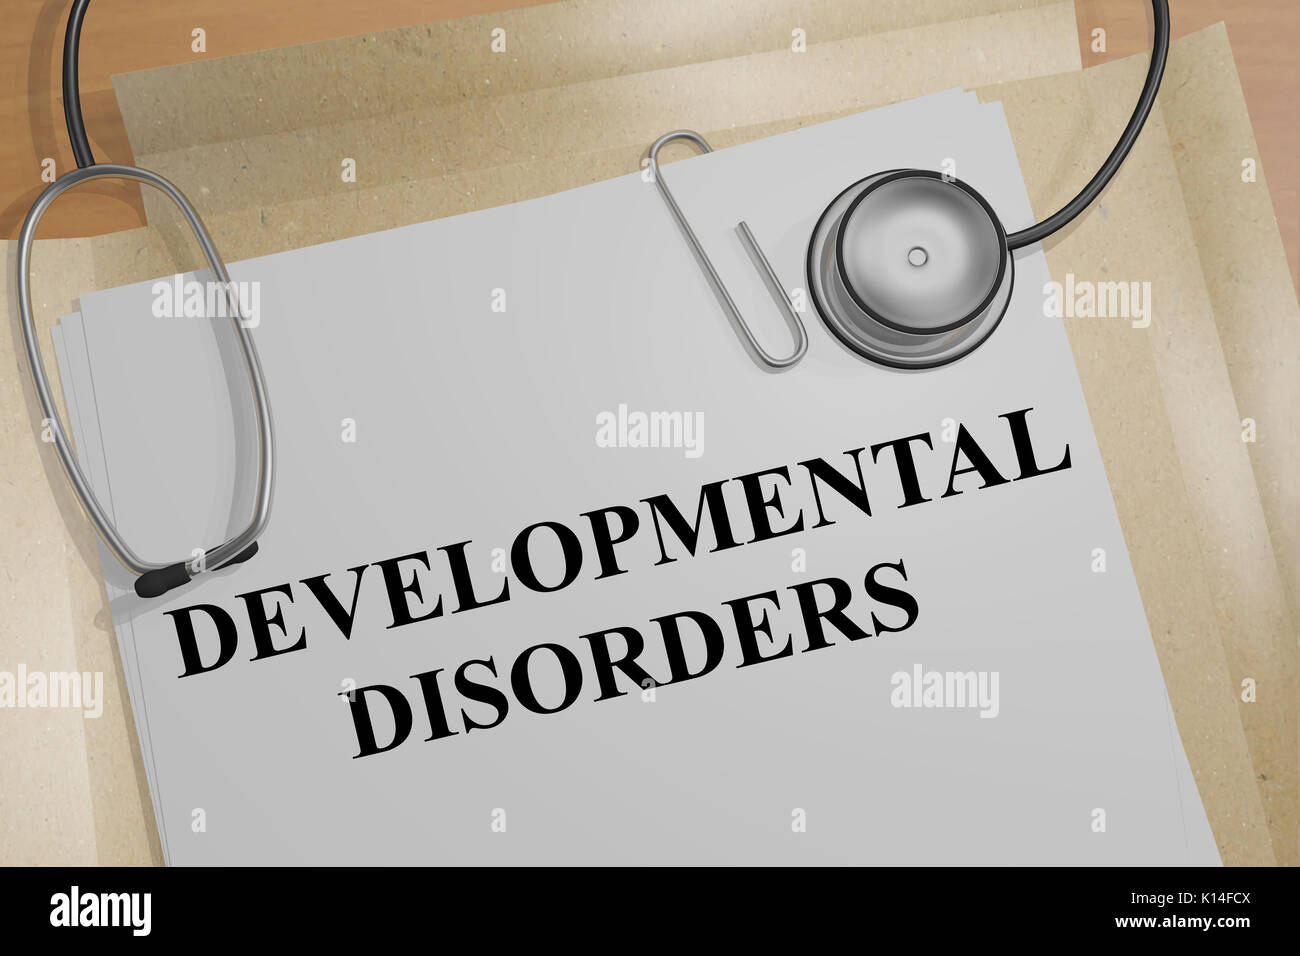 3D illustration of 'DEVELOPMENTAL DISORDERS' title on a medical document - Stock Image